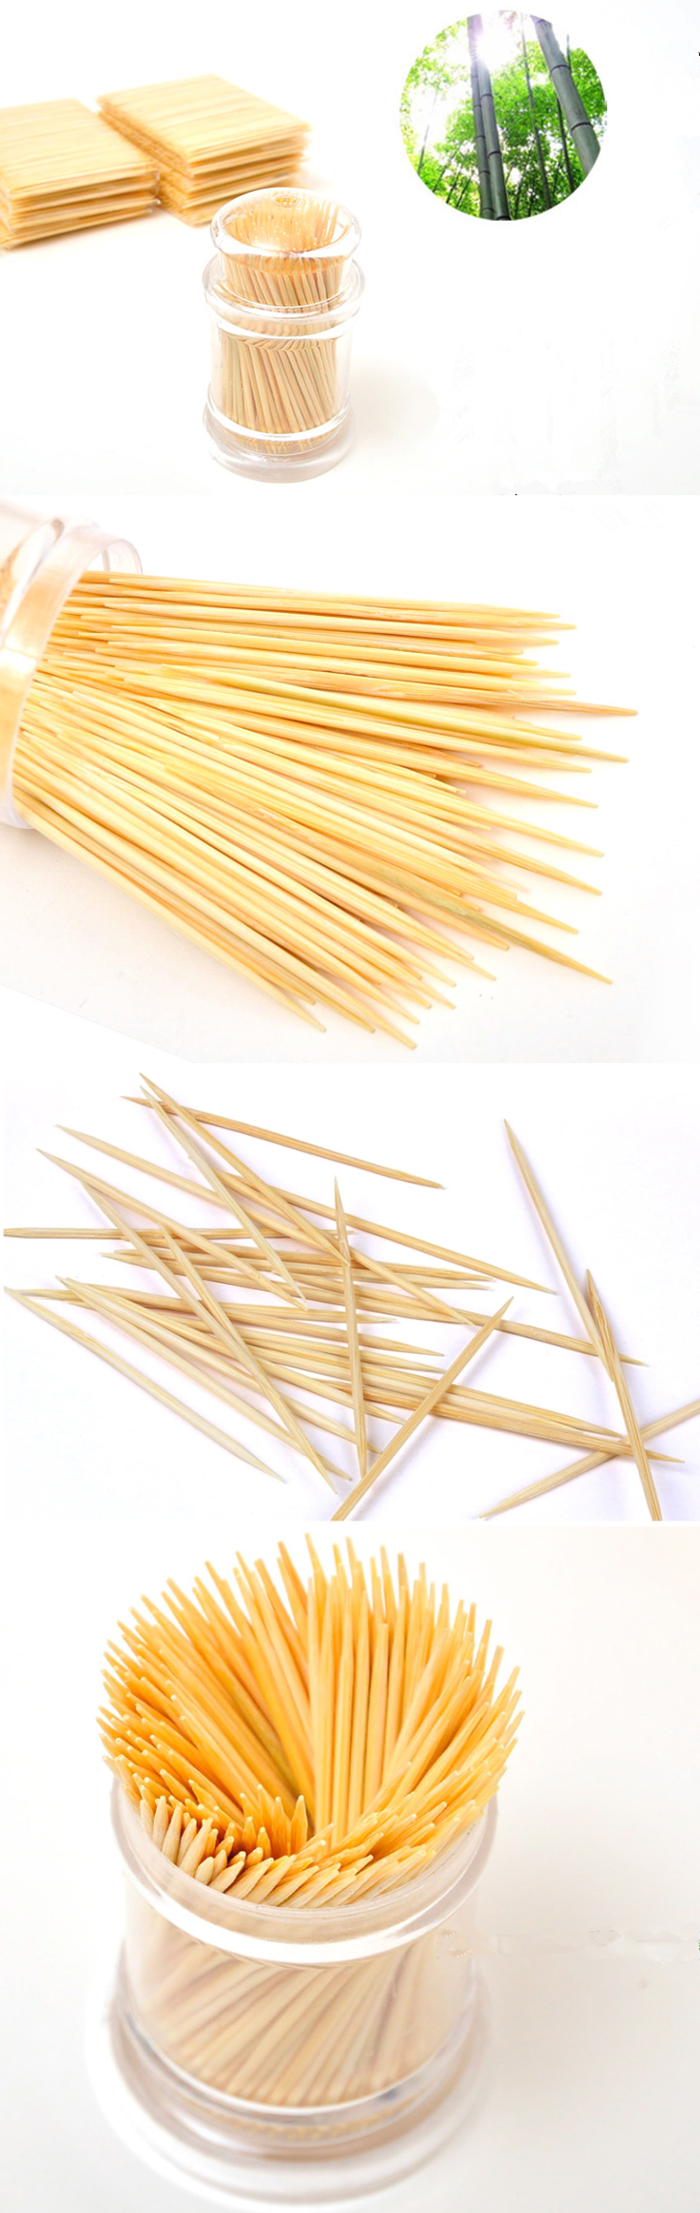 Different kinds of single packing bamboo wood skewers toothpicks for appetizers